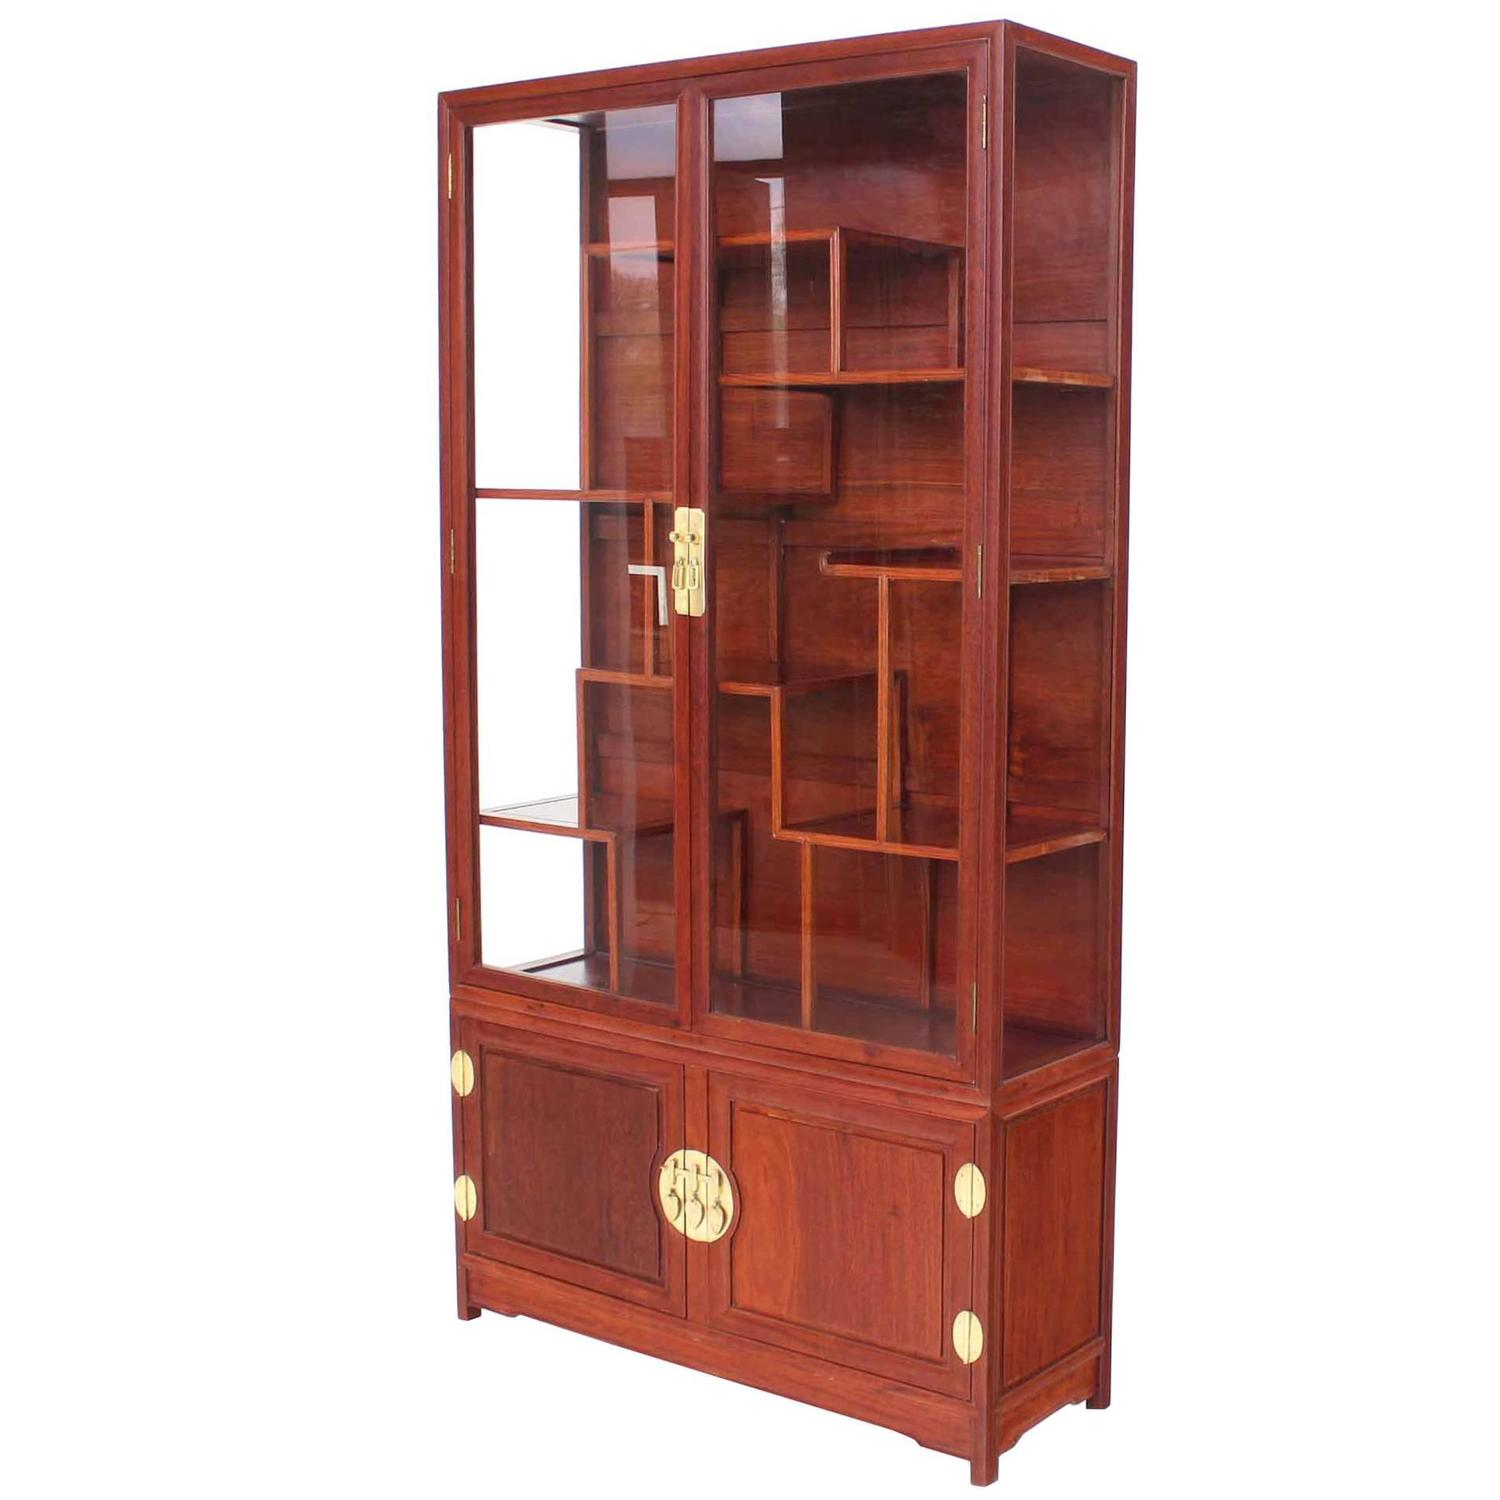 Display Kitchen Cabinets For Sale: Mid-Century Modern Oriental Display Cabinet With Brass